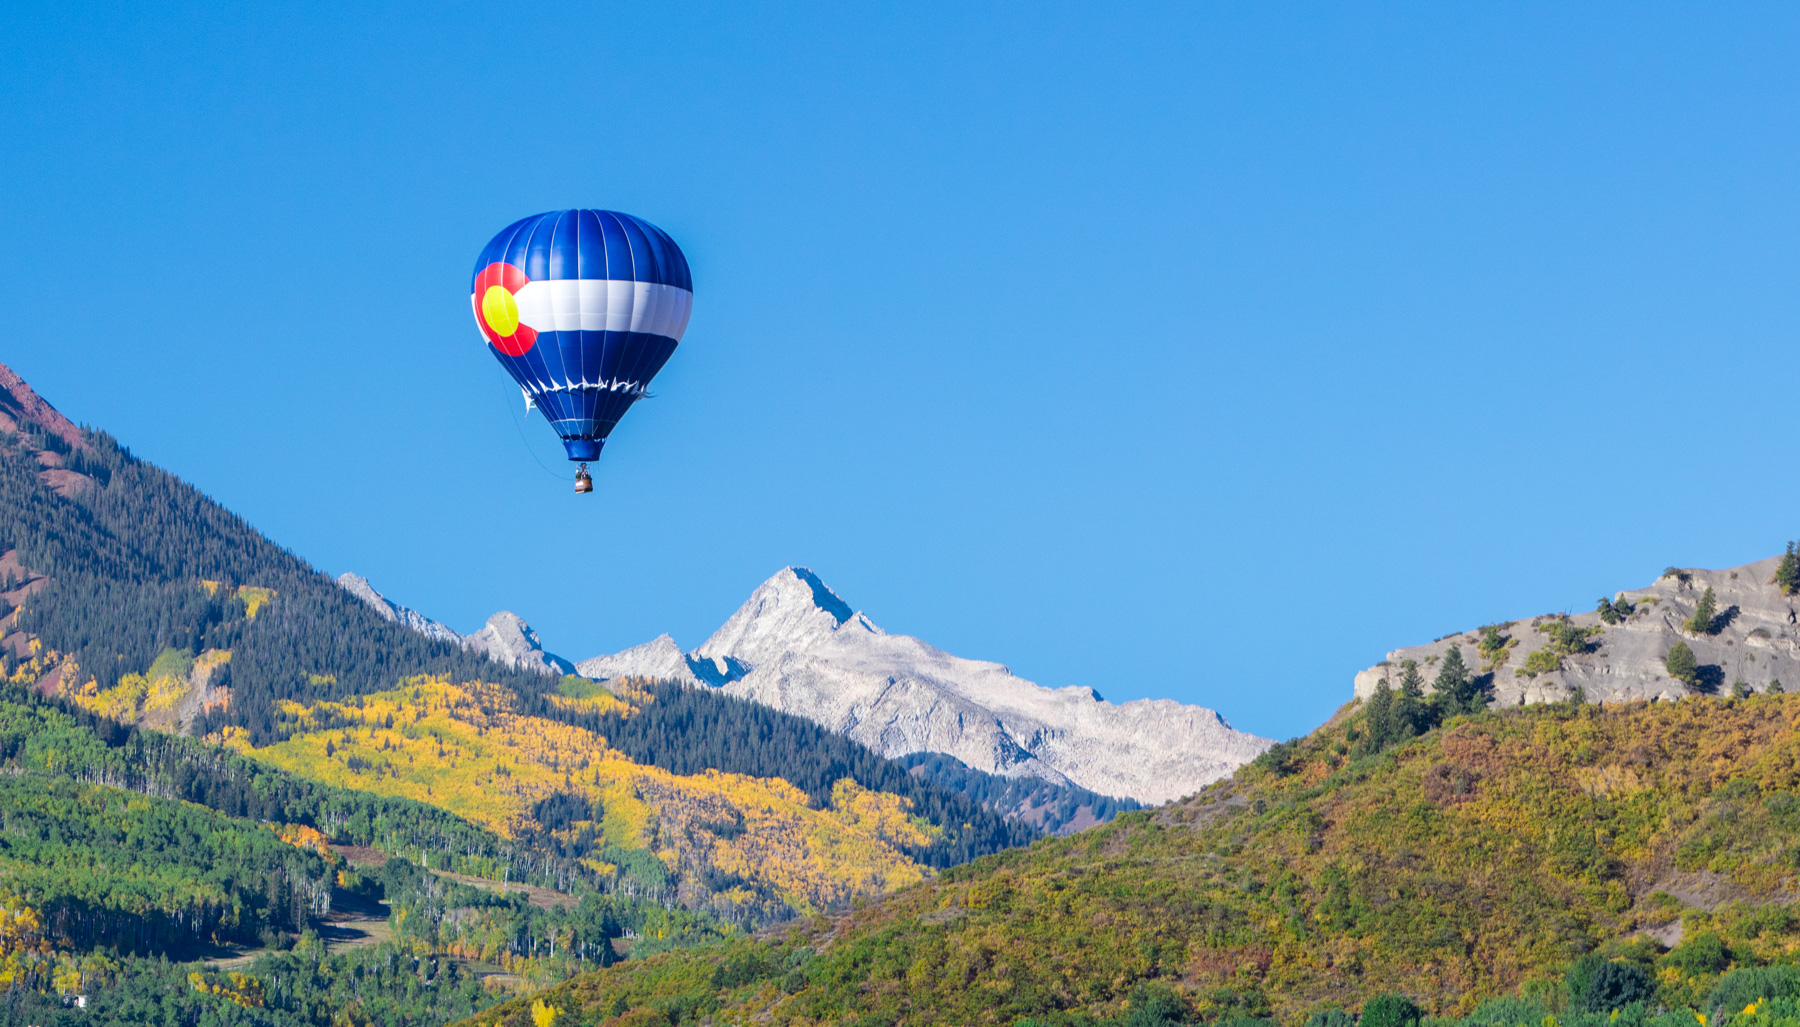 Landscape photo of hot air balloon with Colorado flag on it  above the trees during fall in Aspen, Colorado.